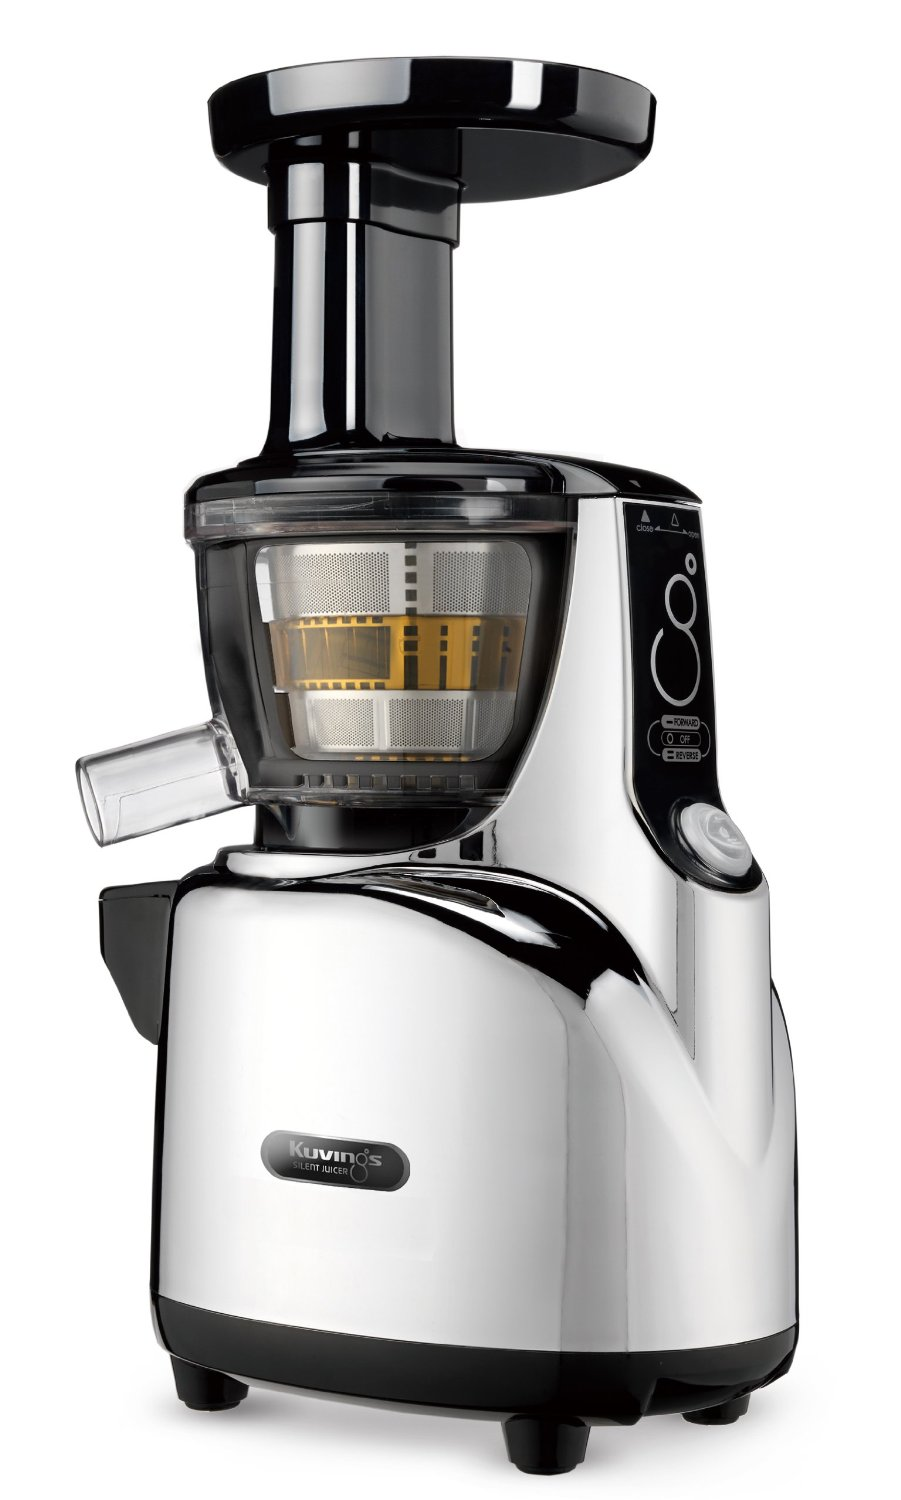 The Best Masticating Juicer Reviews : 5 Best Kuvings Juicer Reviews UPDATED: 2018 The Home Savant